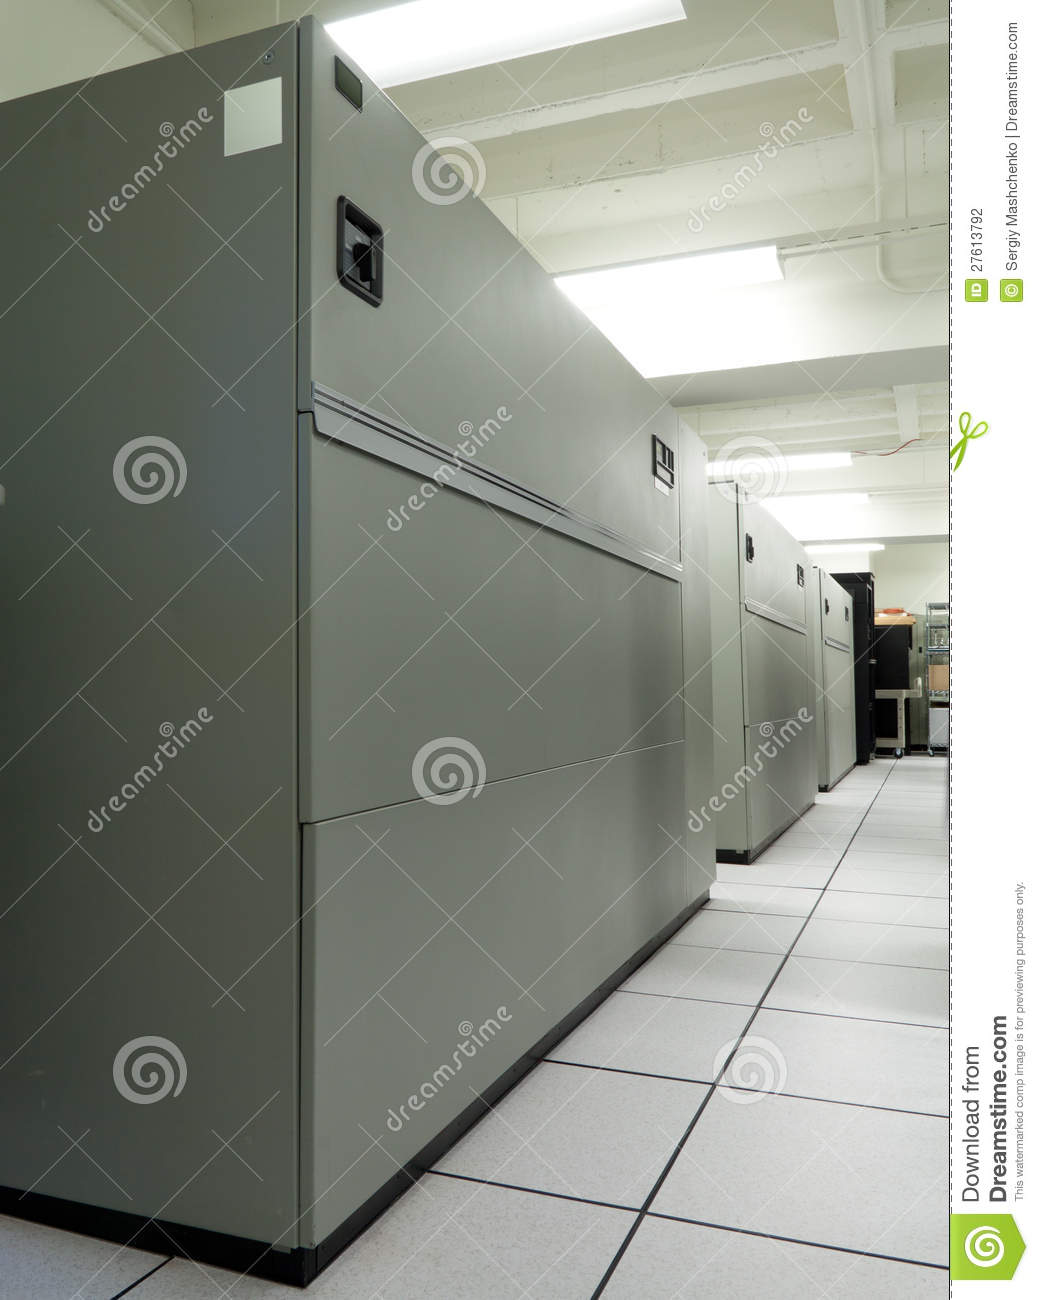 Computer Room Air Conditioning (CRAC) Units Stock Photography Image  #82A229